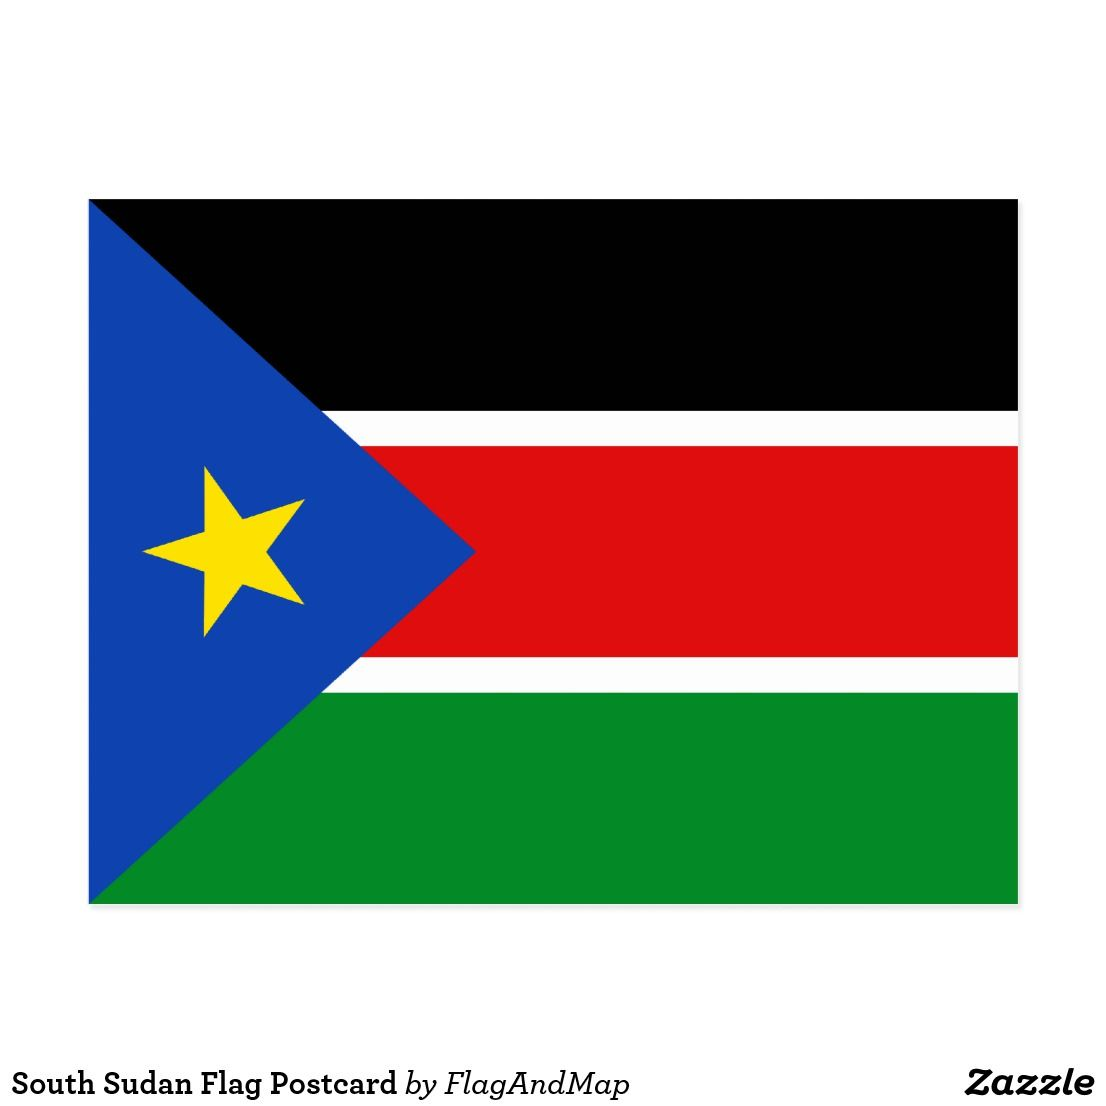 South Sudan Flag Postcard Zazzle Com South Sudan Flag Sudan